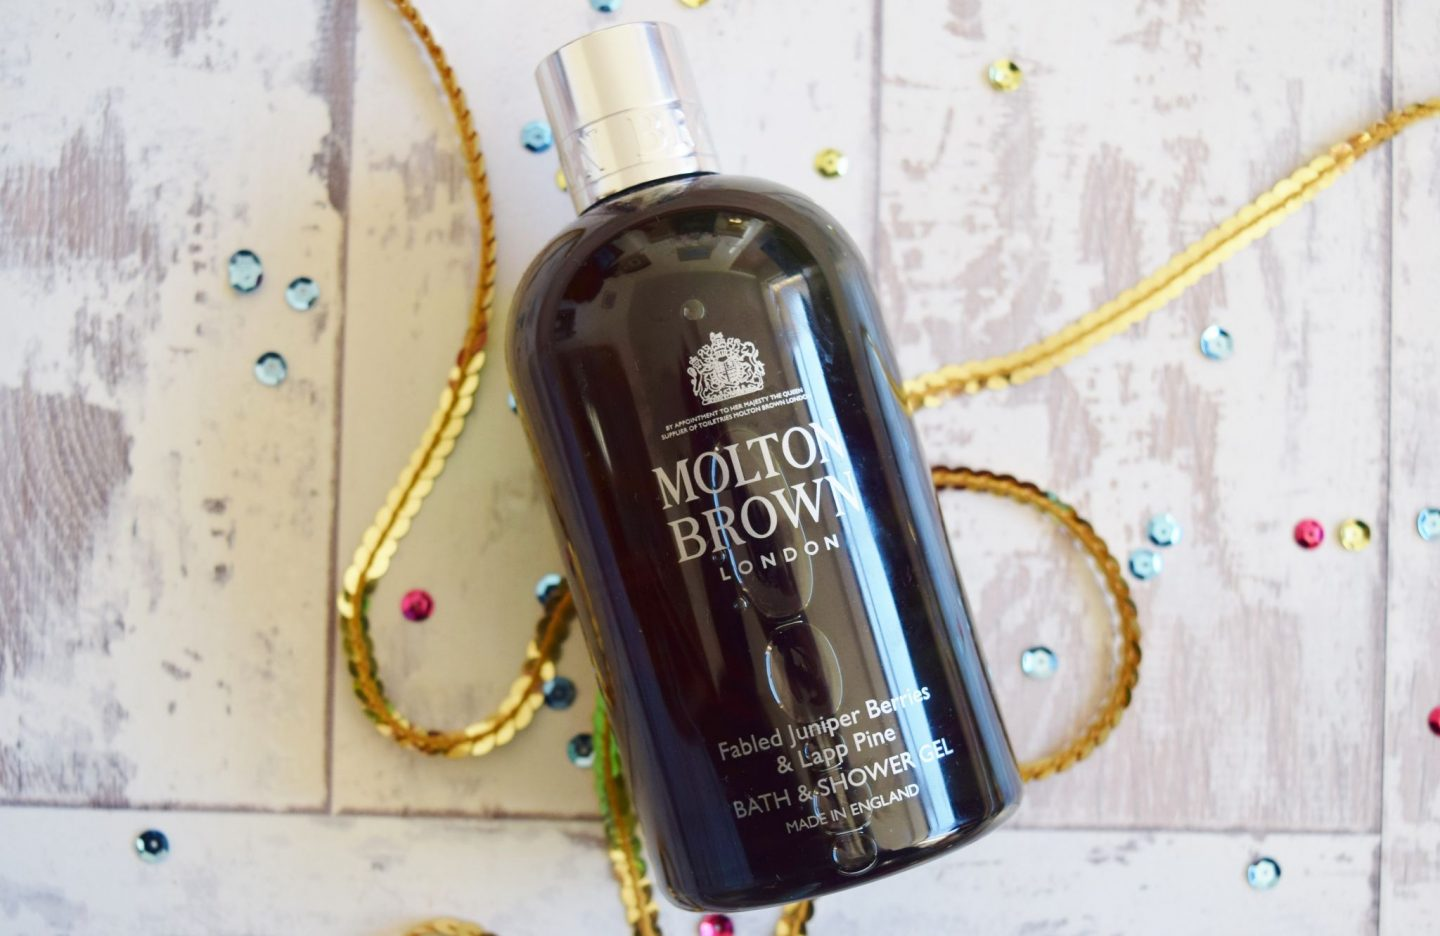 Molton Brown Fabled Juniper Berries & Lapp Pine Bath & Shower Gel